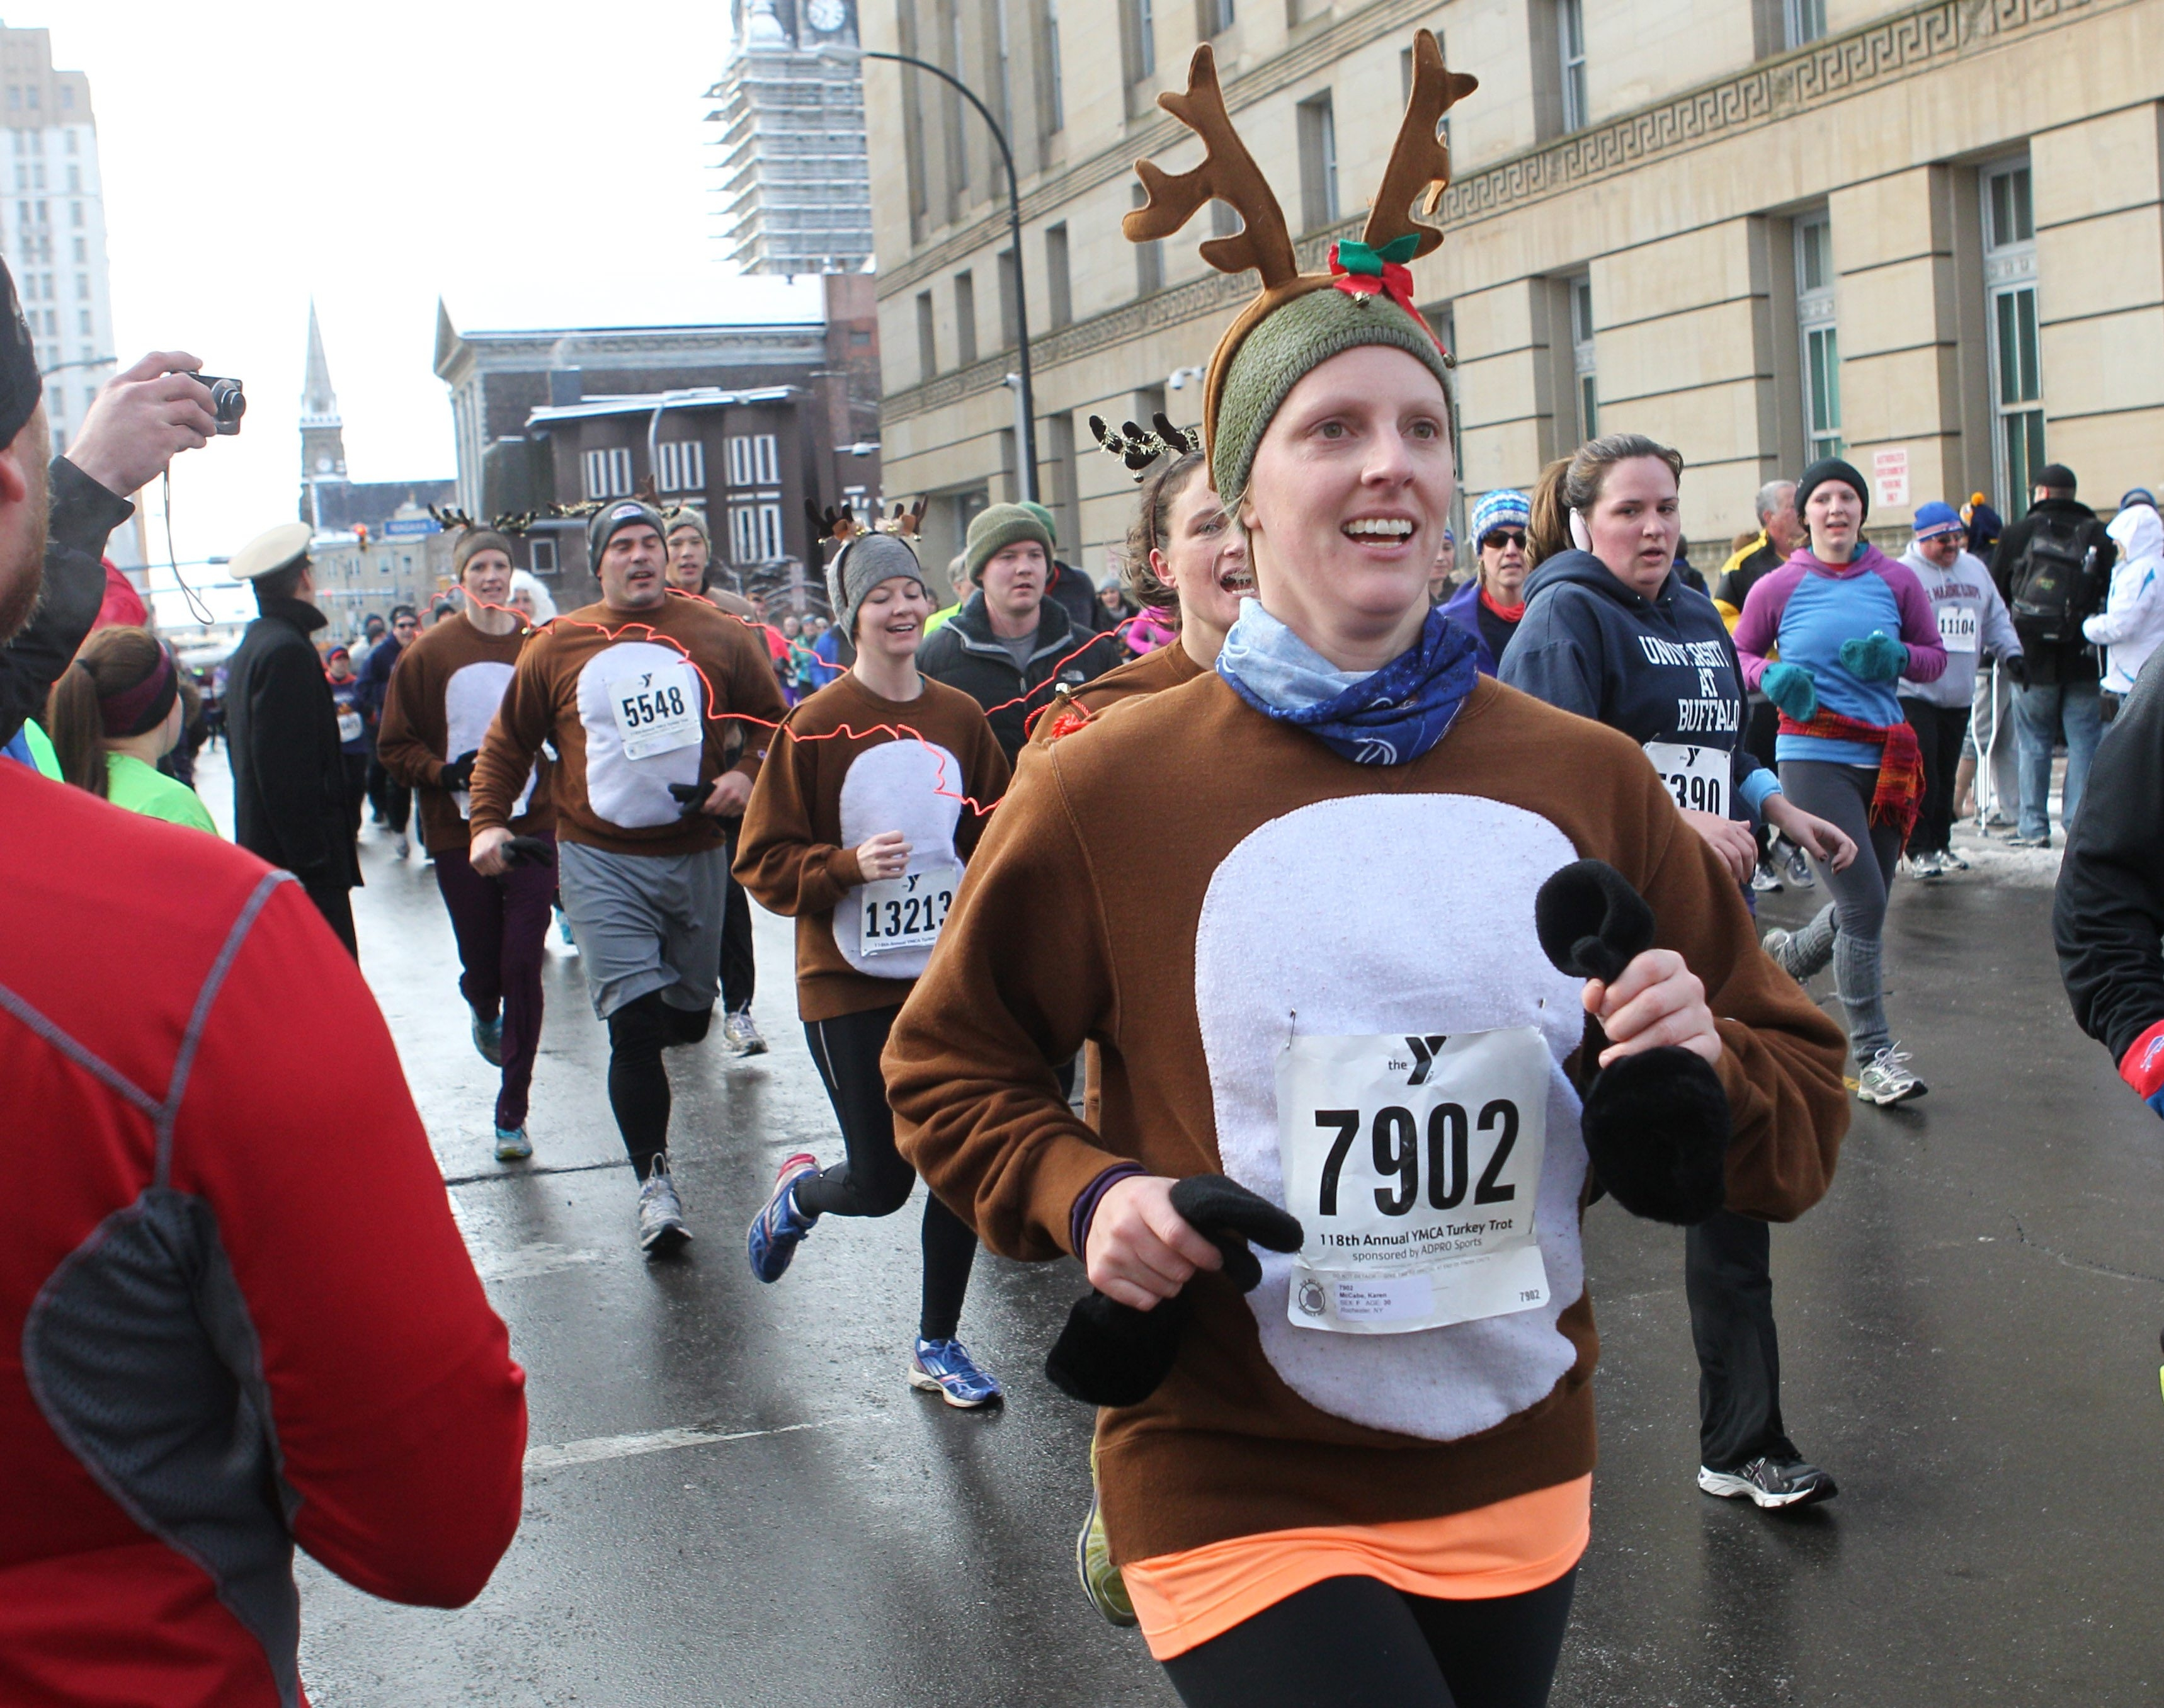 Plenty of runners in costume added to the party atmosphere for the 118th annual Turkey Trot.